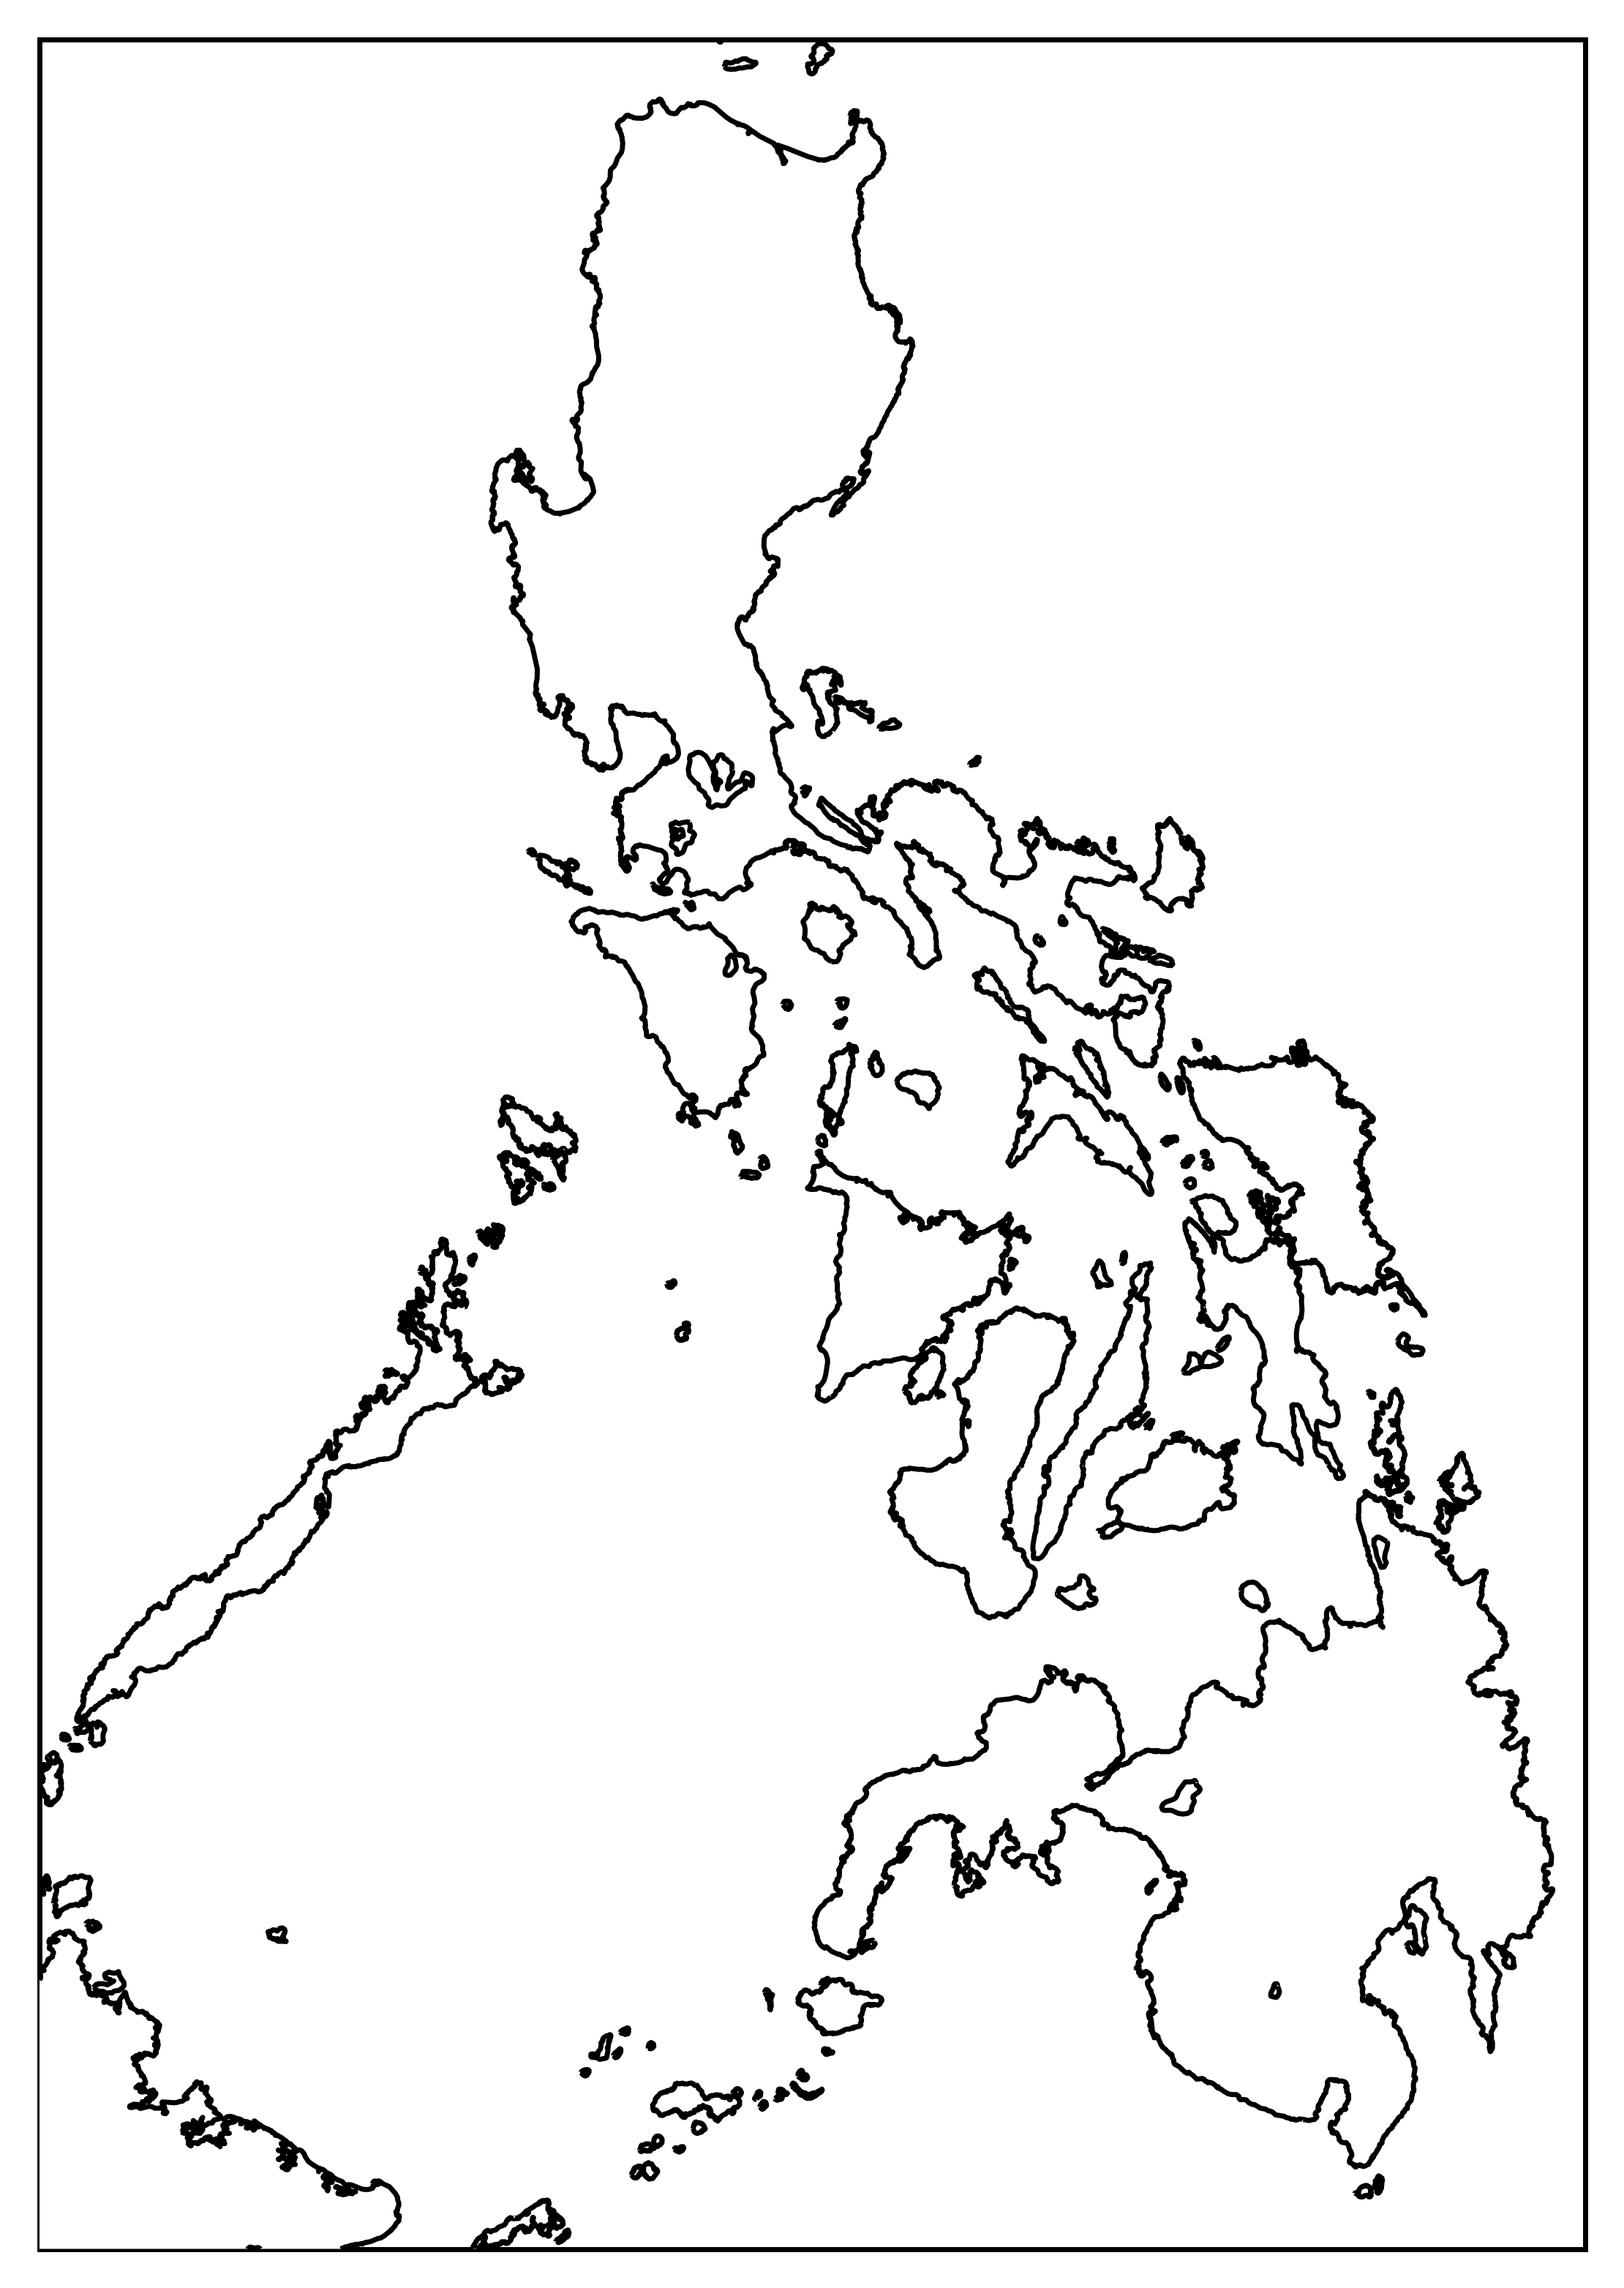 Image of: Tutorial Animating Heatmap Overlay Ed Into Philippine Map Bash Is 42